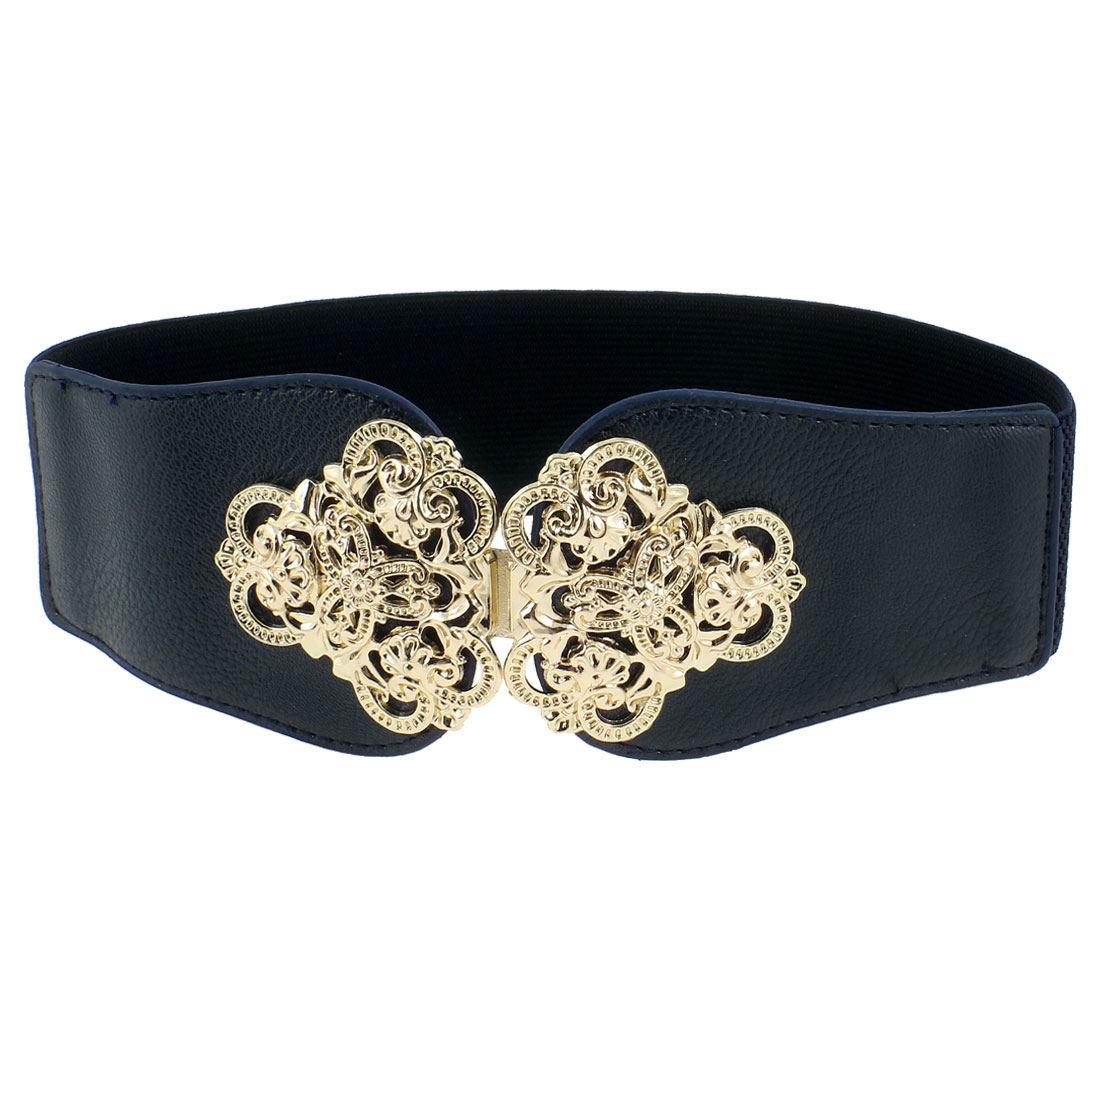 Floral Interlocking Buckle 6cm Wide Elastic Waist Belt Band Waistband Dark Blue